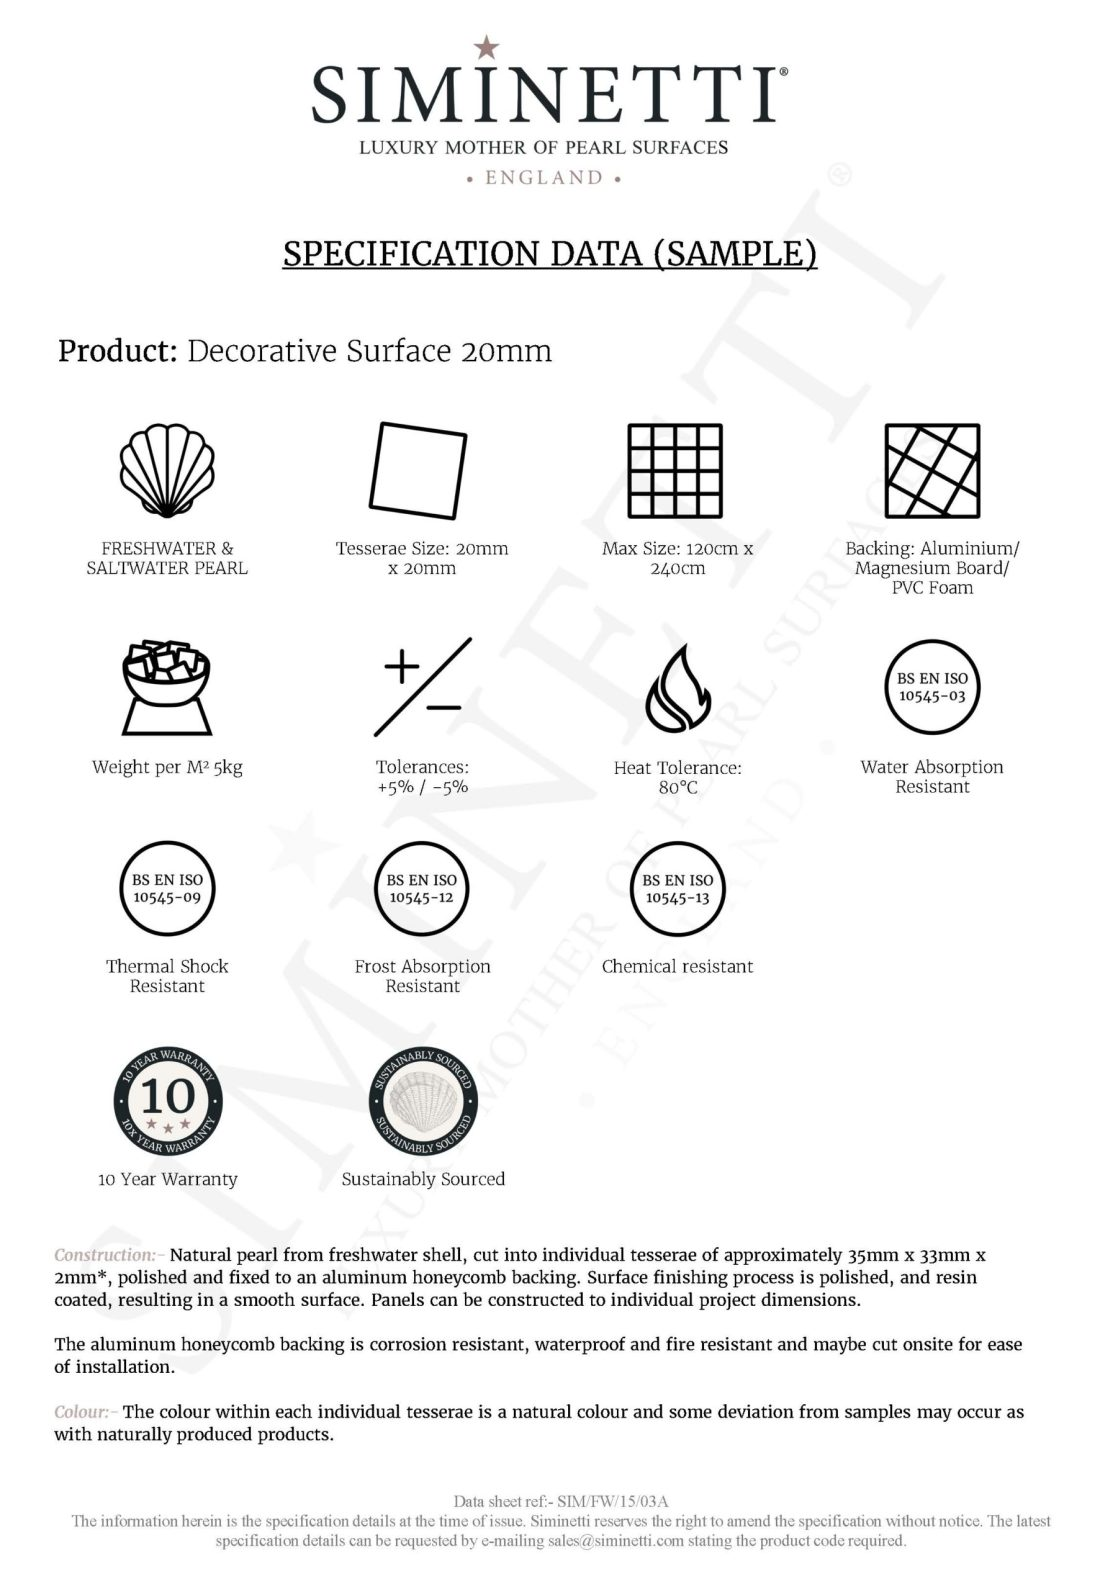 Decorative Surfaces Sample Specification